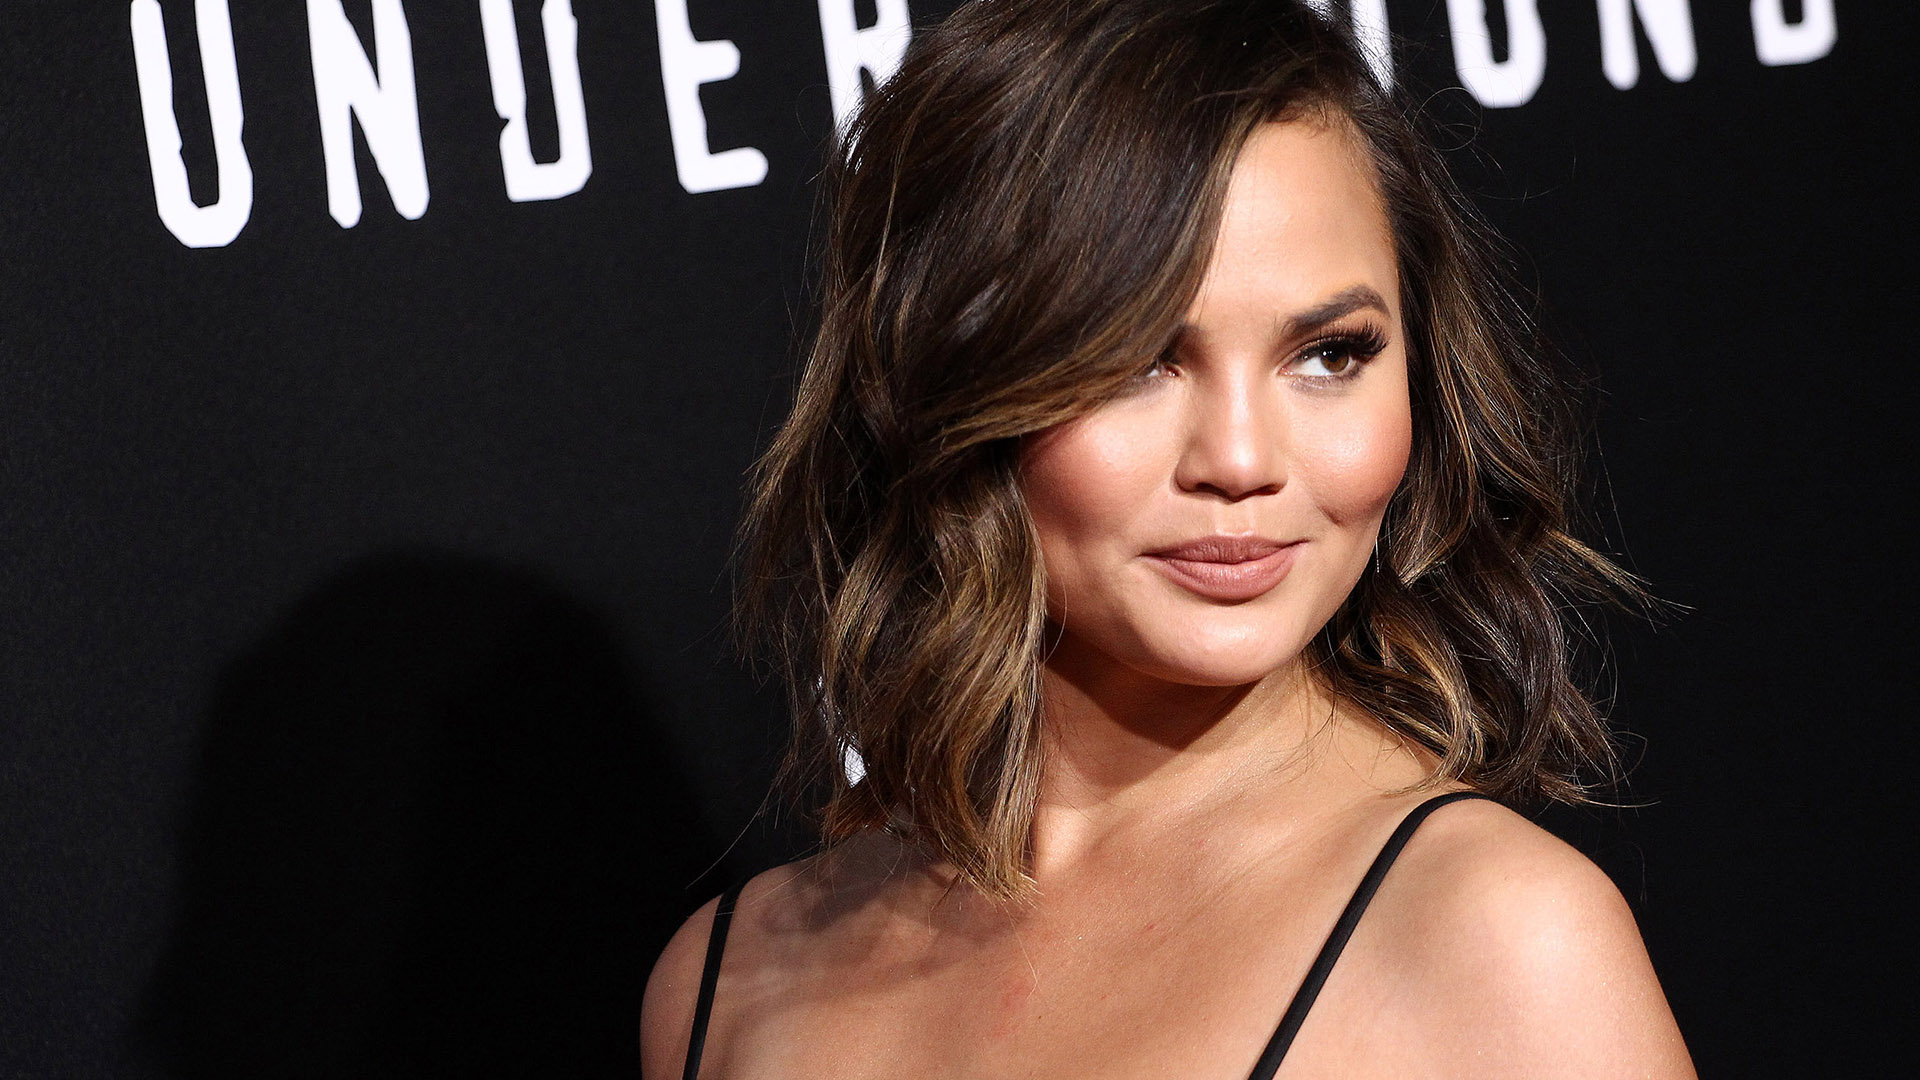 Chrissy Teigen Is Being Body-Shamed for the Size of Her Baby Bump